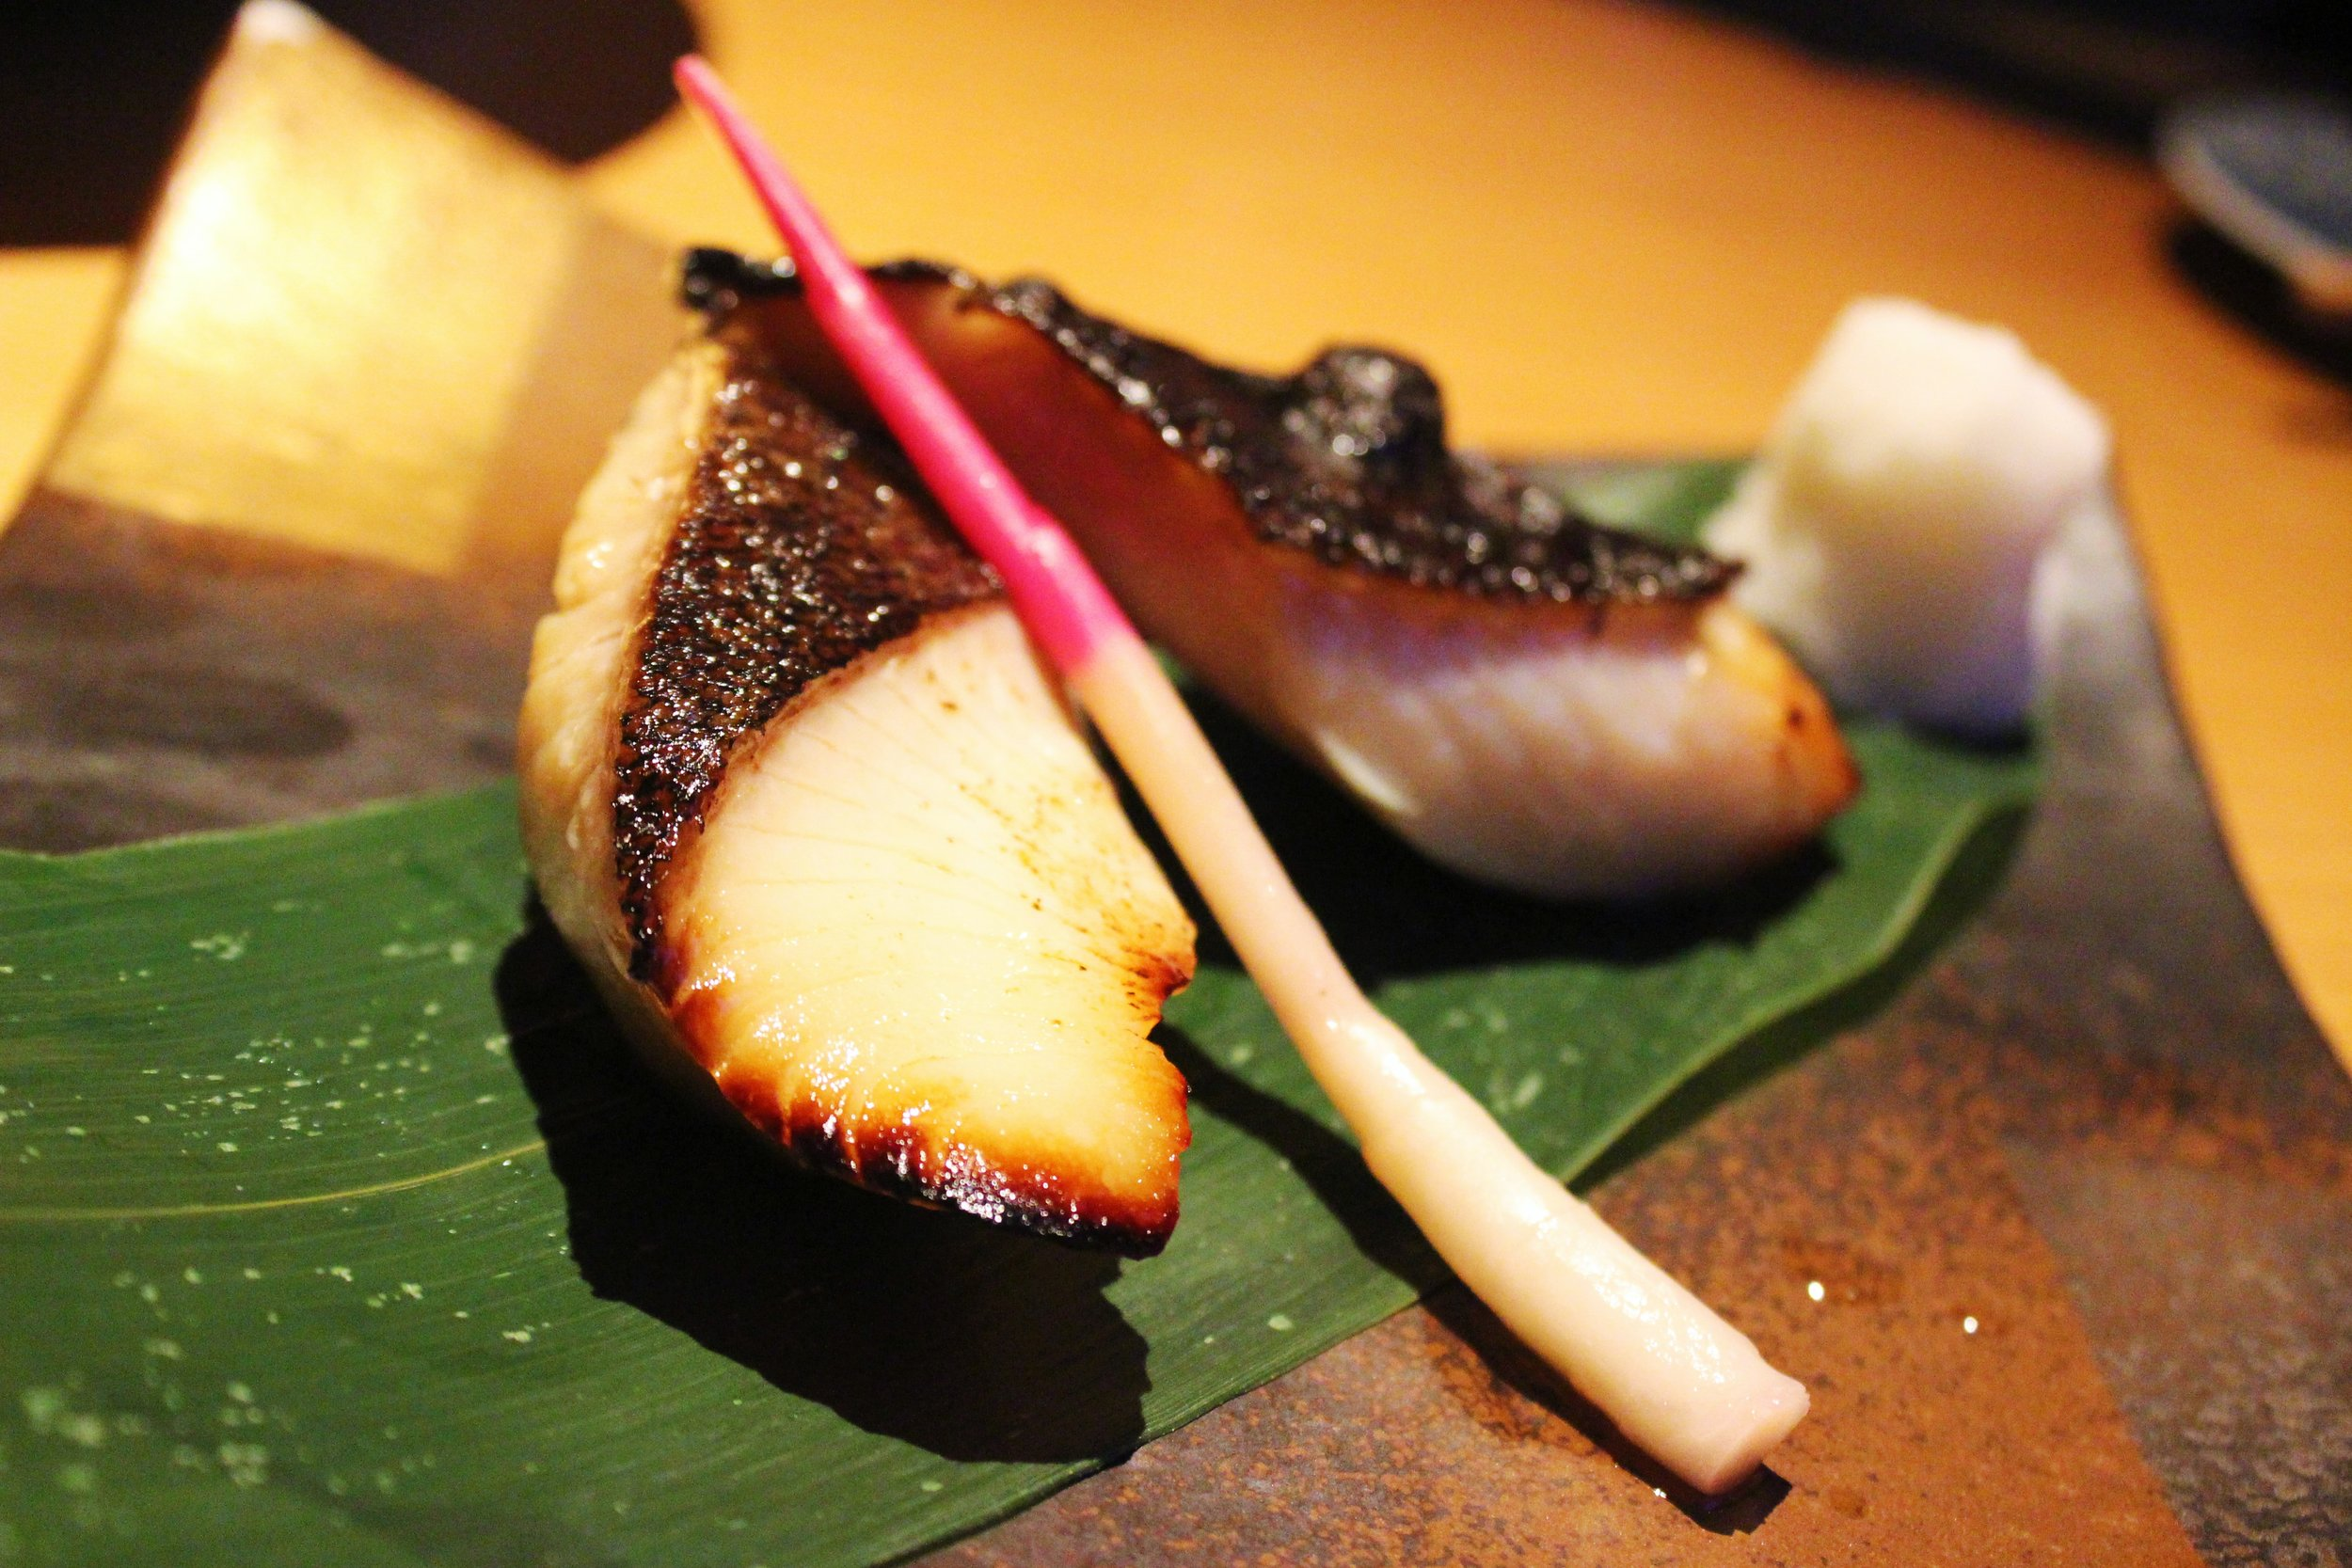 Broiled Alaskan Black Cod marinated in Saikyo Miso at EN Japanese Brasserie